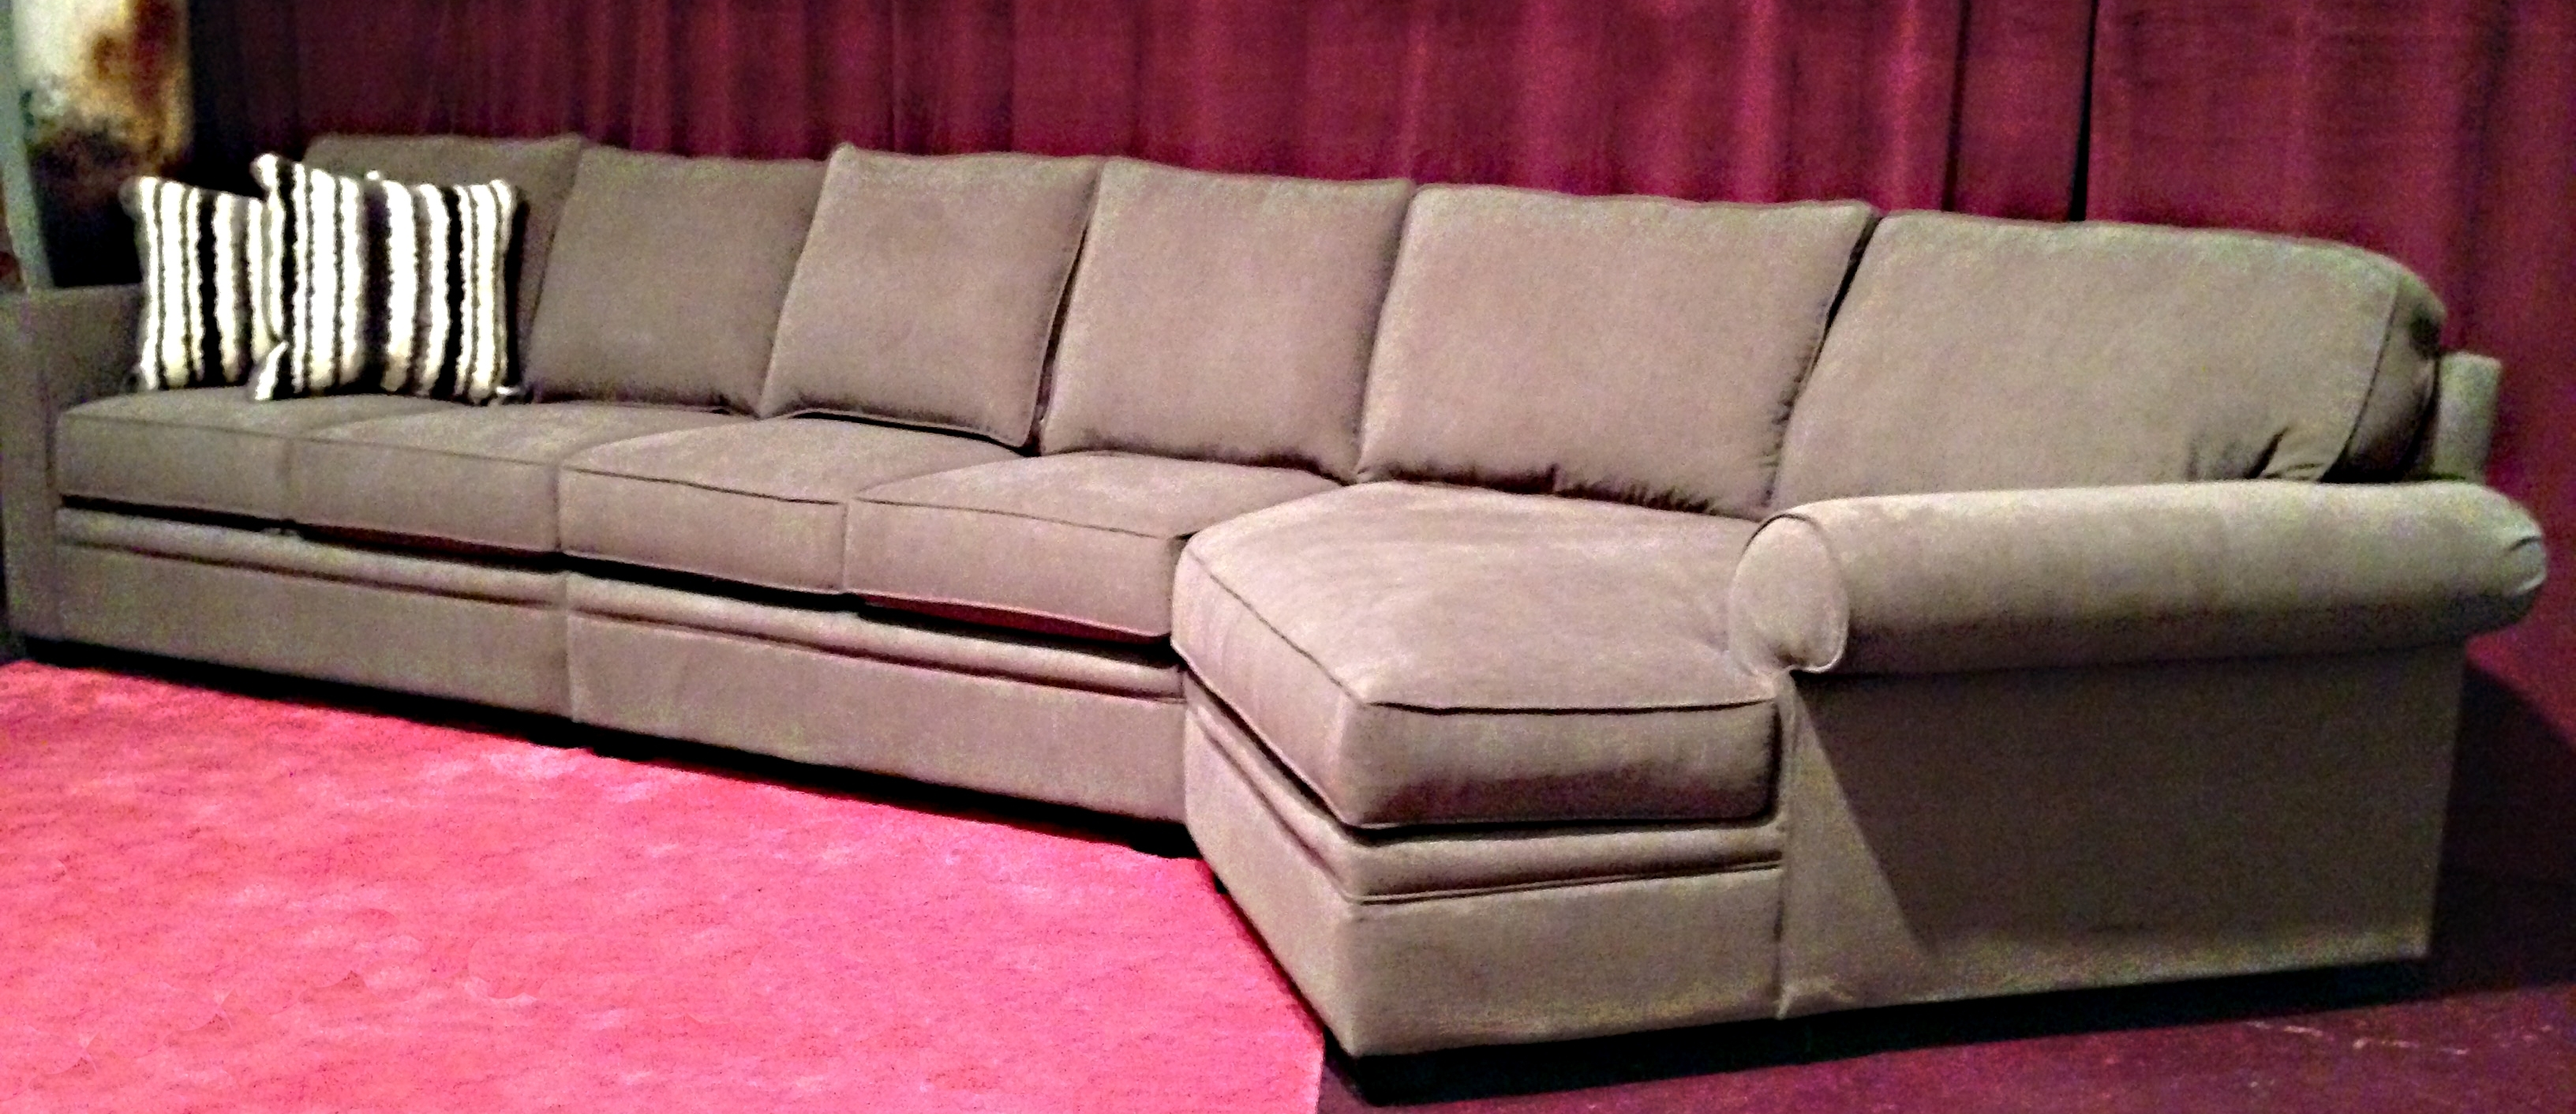 Furniture Extra Large Sofa Oversized Couch Deep Cushion Couch From In Preferred Deep Cushion Sofas (View 10 of 20)